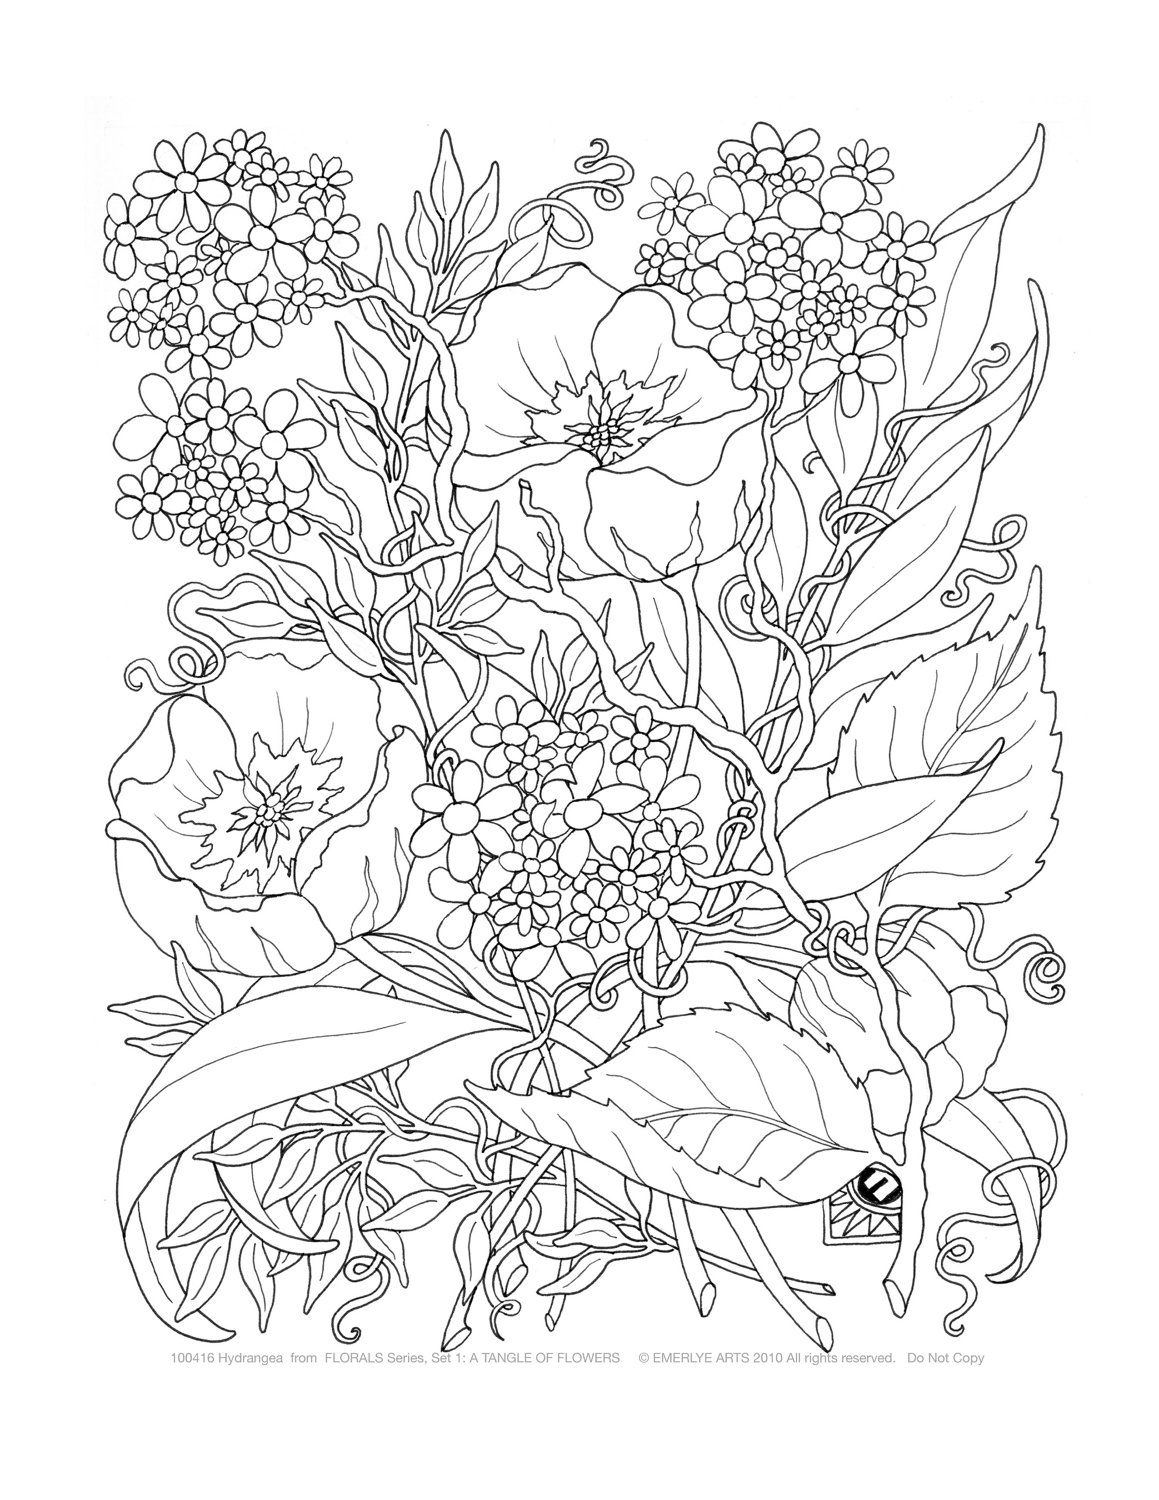 New Coloring Pages | Only Coloring Pages